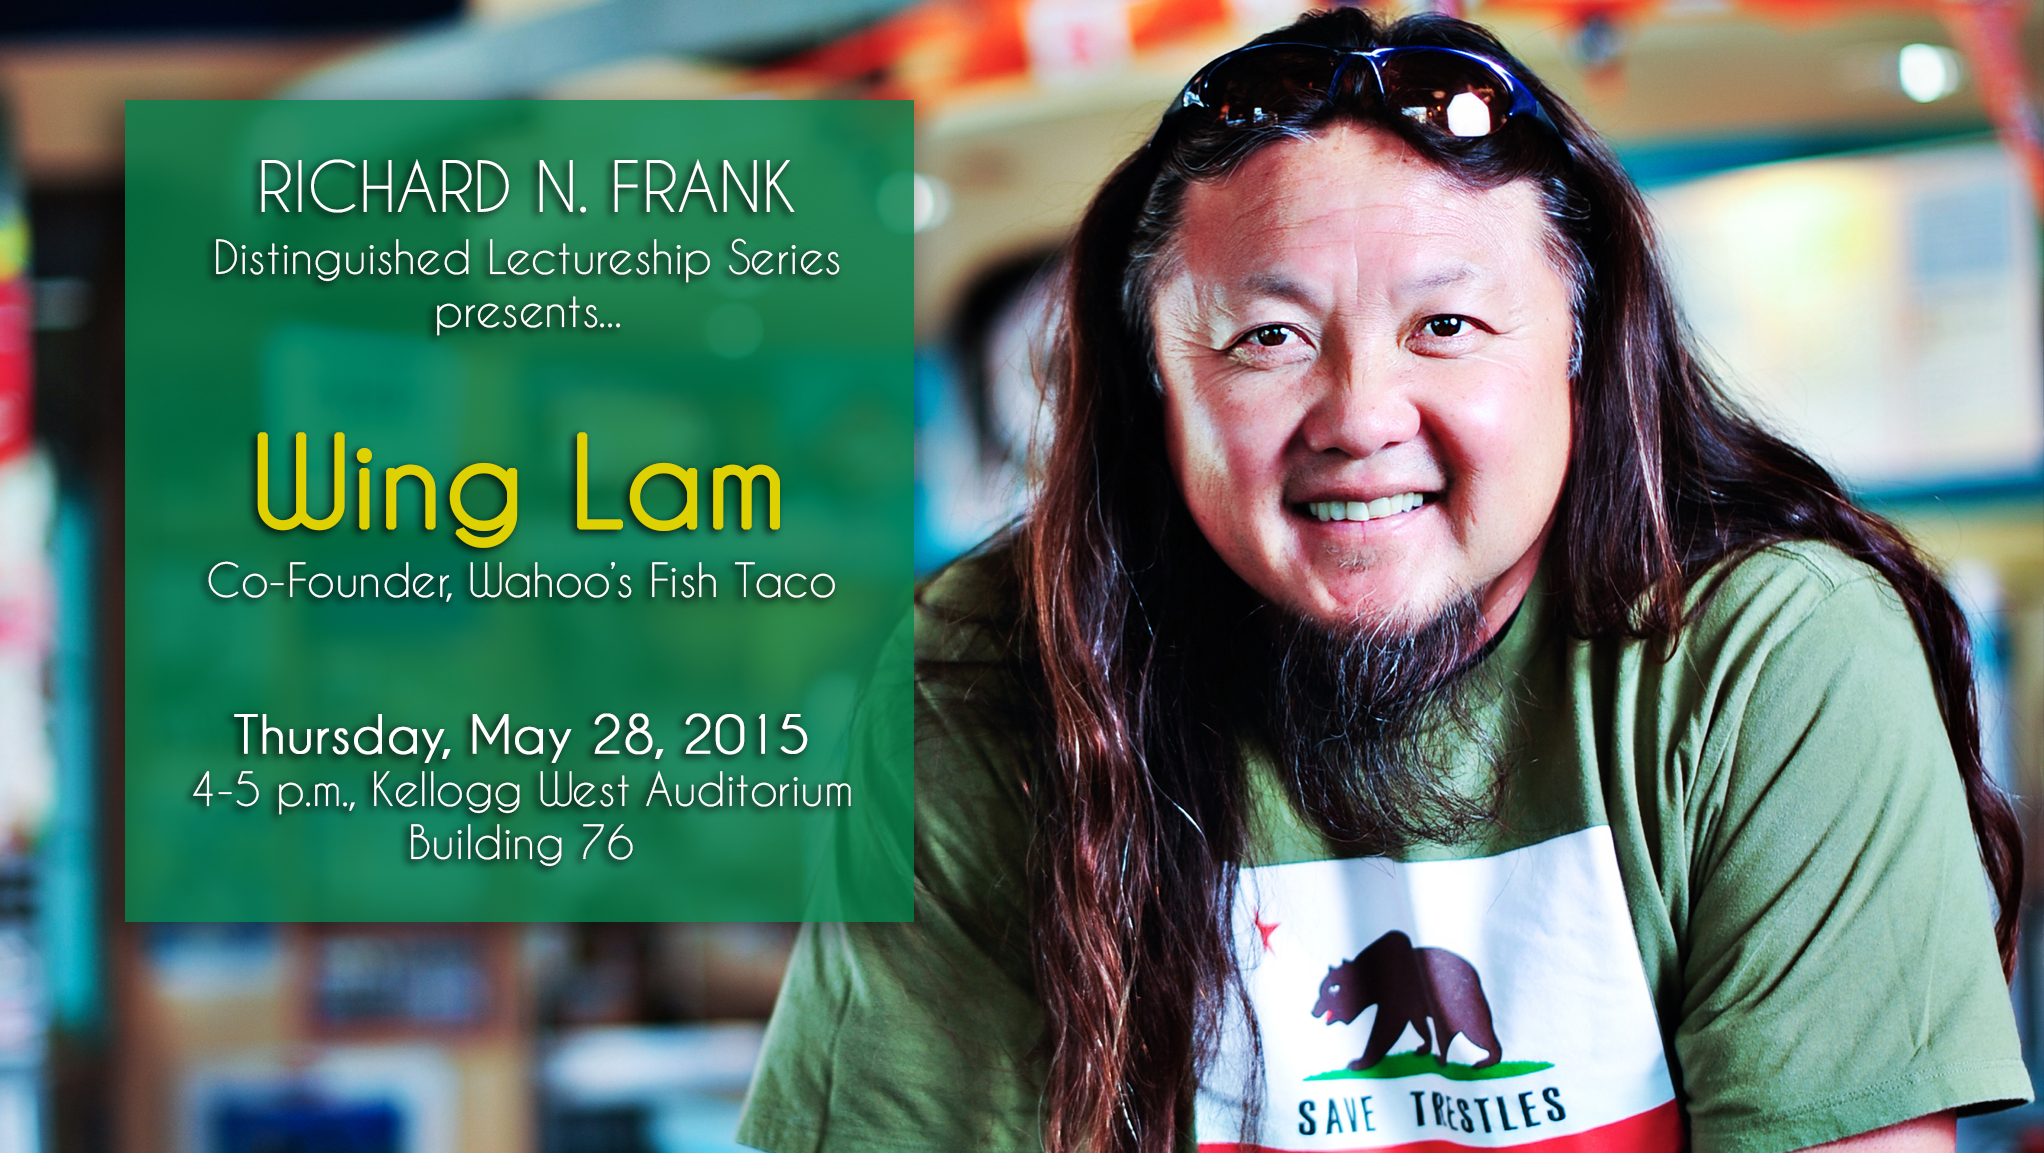 Richard N. Frank Distinguished Lectureship: Wing Lam